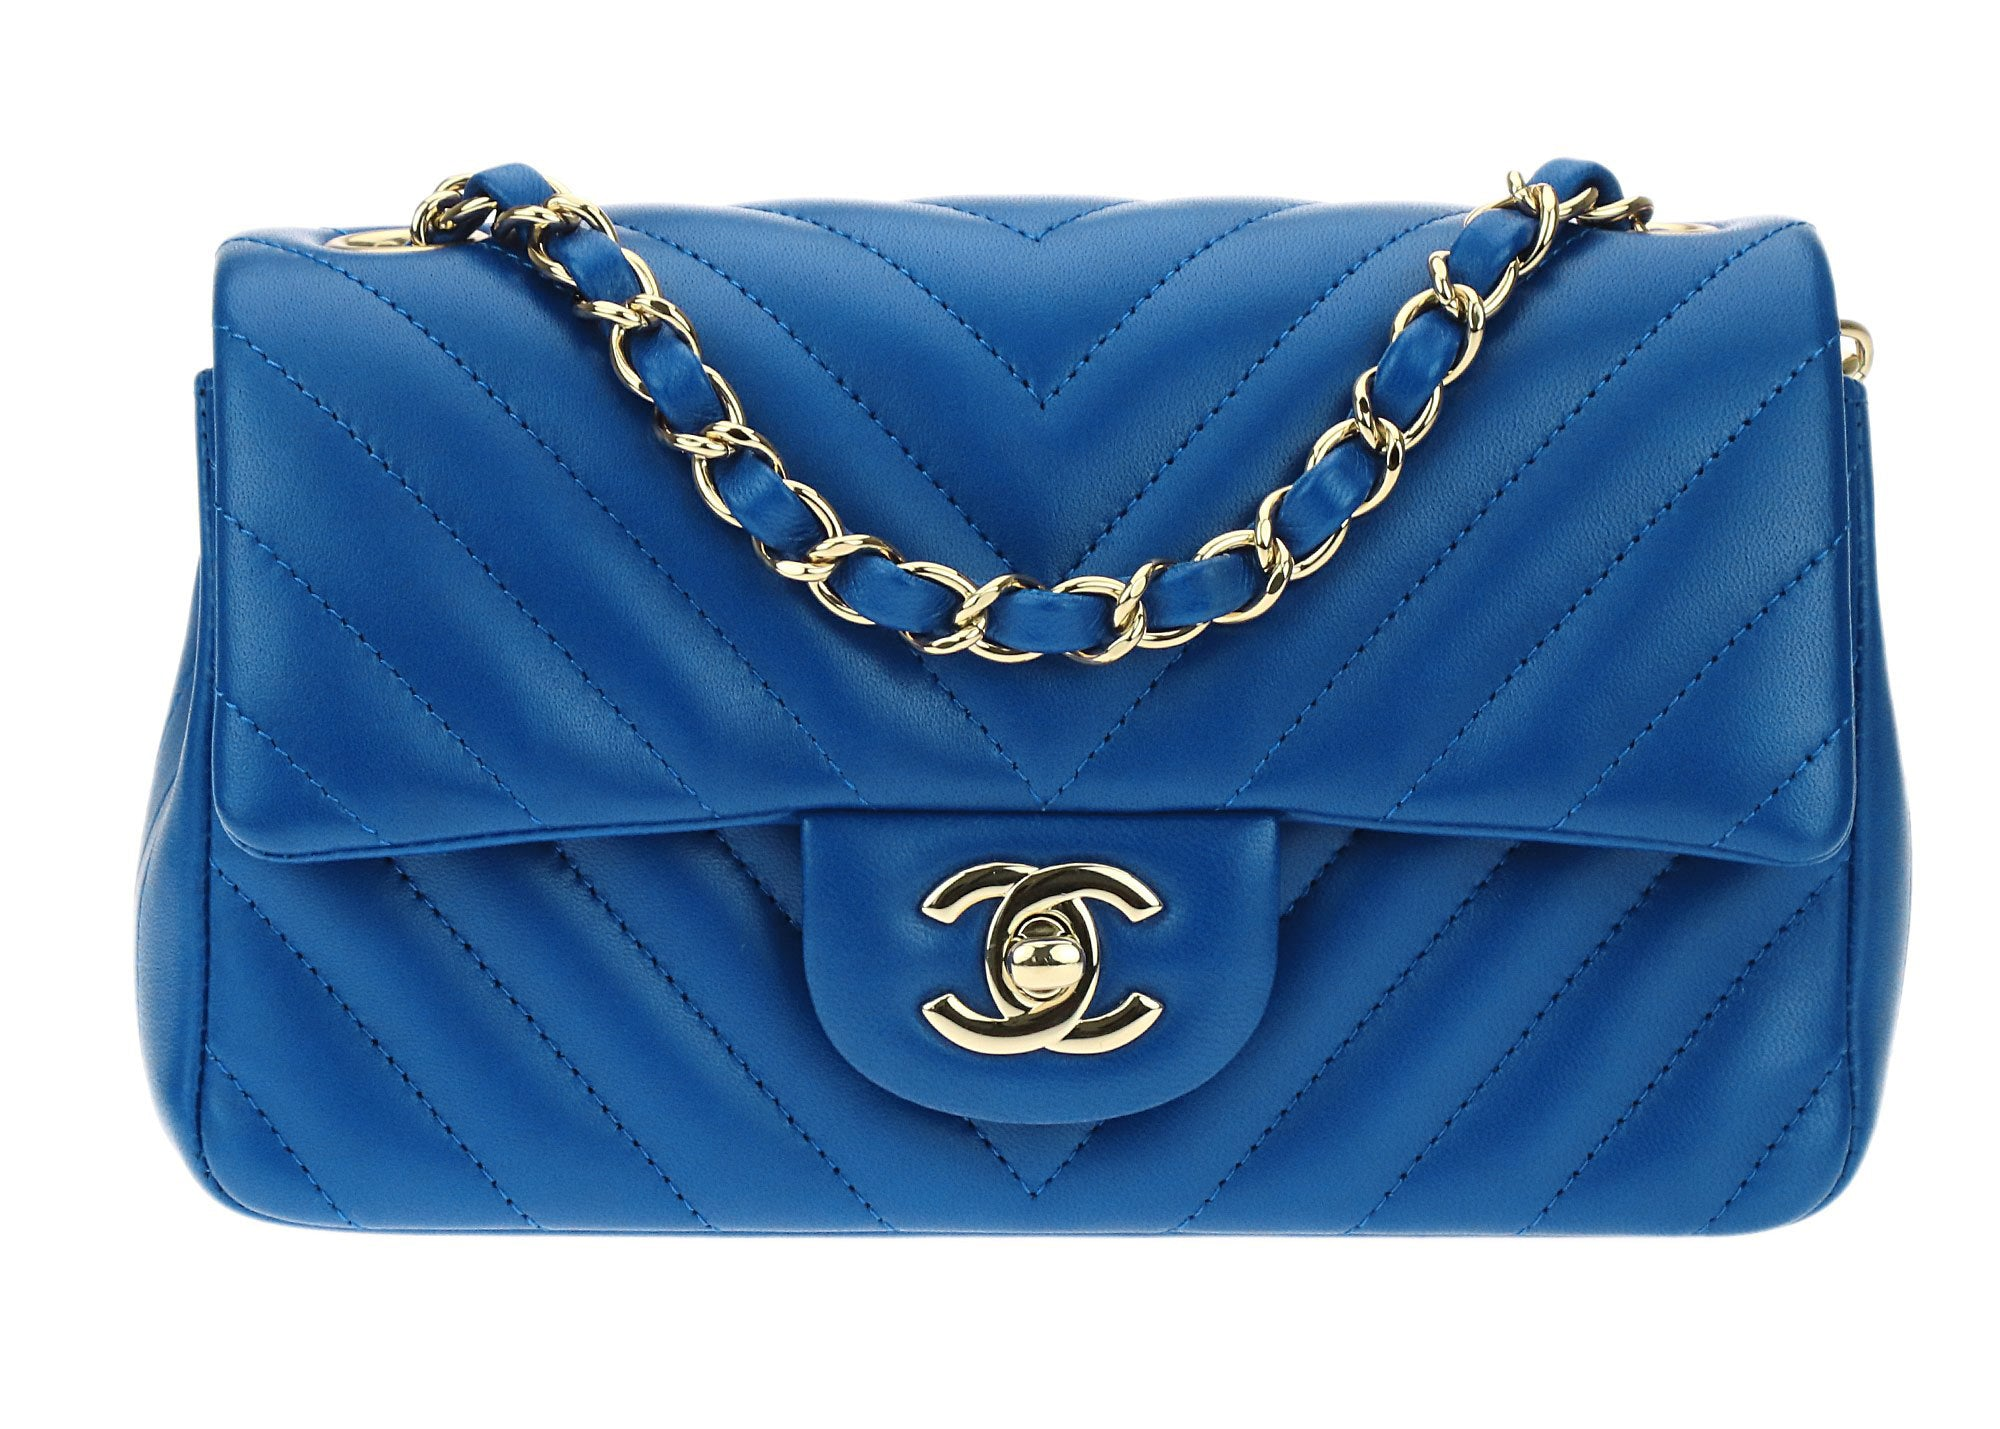 CHANEL | Mini Flap Bag